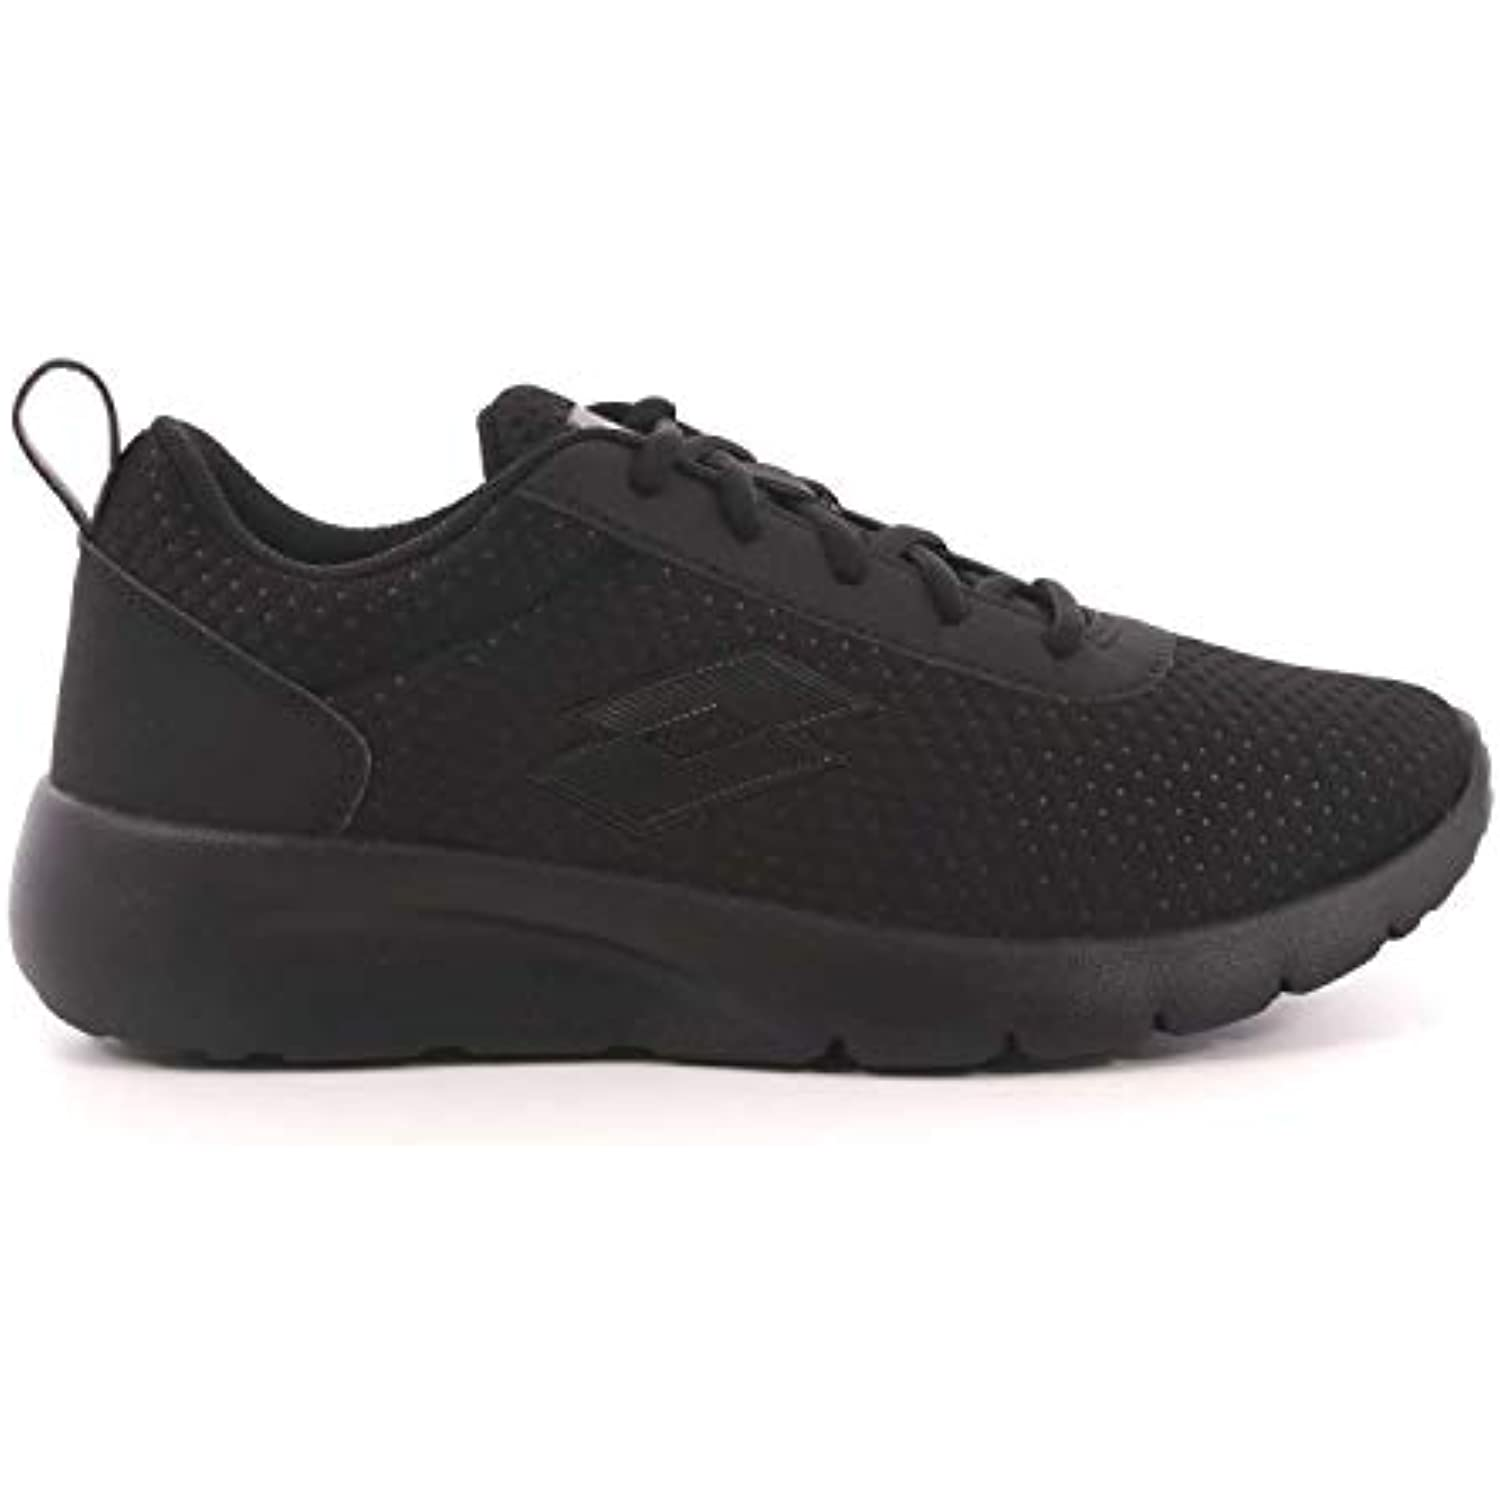 Megalight Running B07gkvfbwd Chaussures Lotto 6ow1fqn Nr Mode W 8q6Rx8wZ